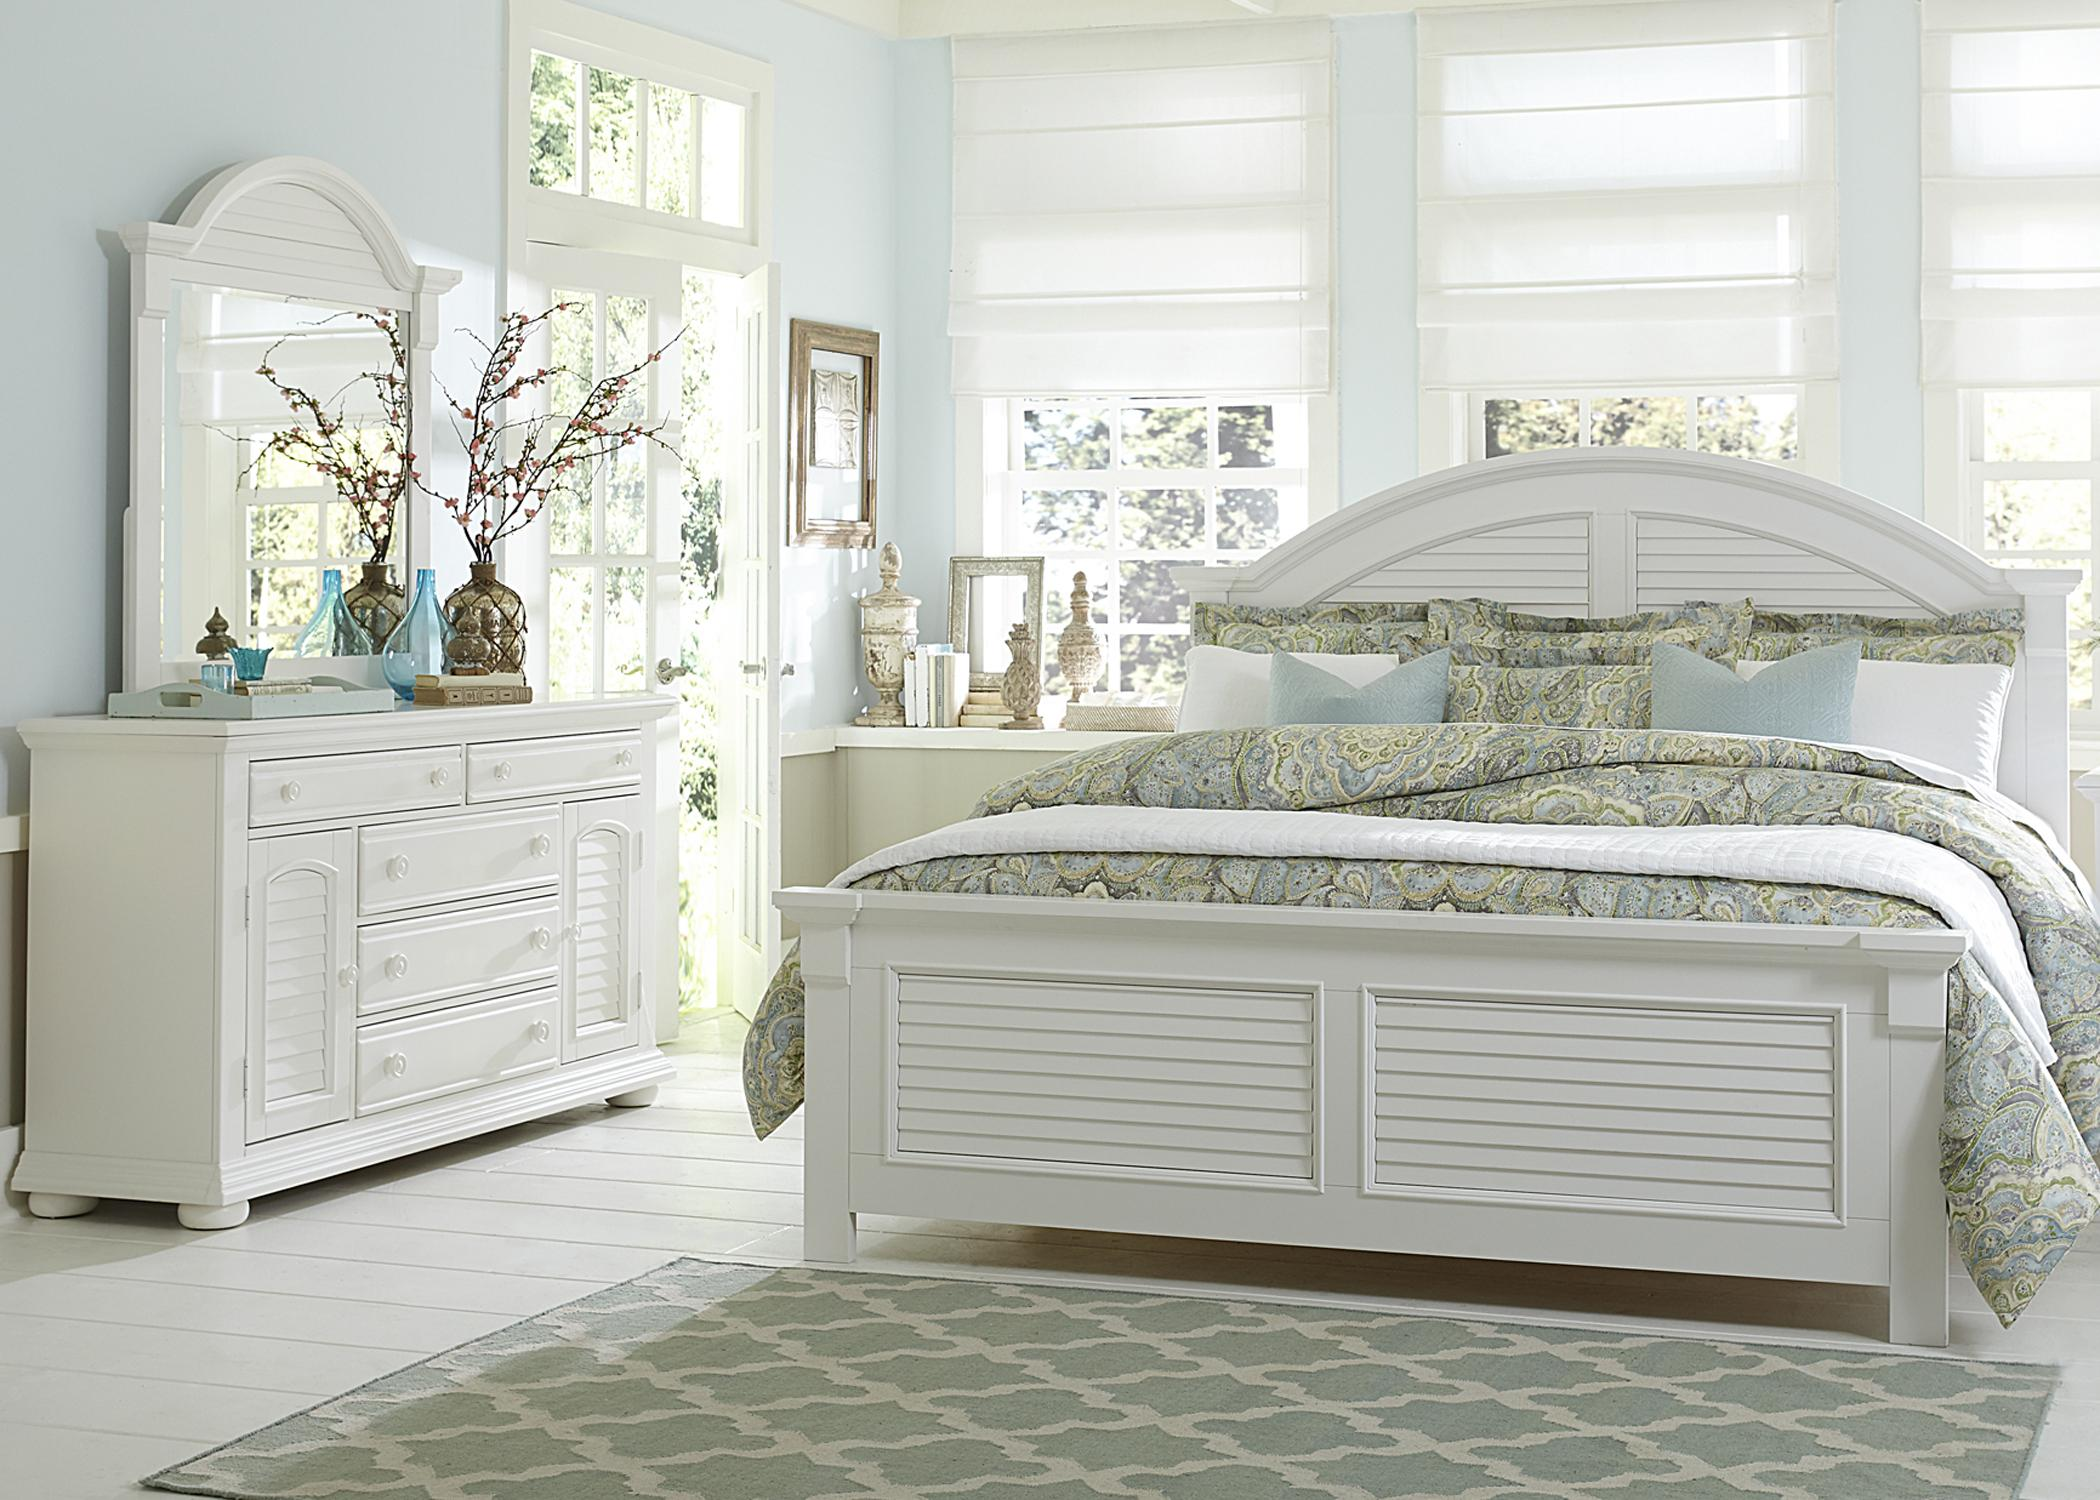 Liberty Furniture Summer House Queen Bedroom Group - Item Number: 607 Q Bedroom Group 2